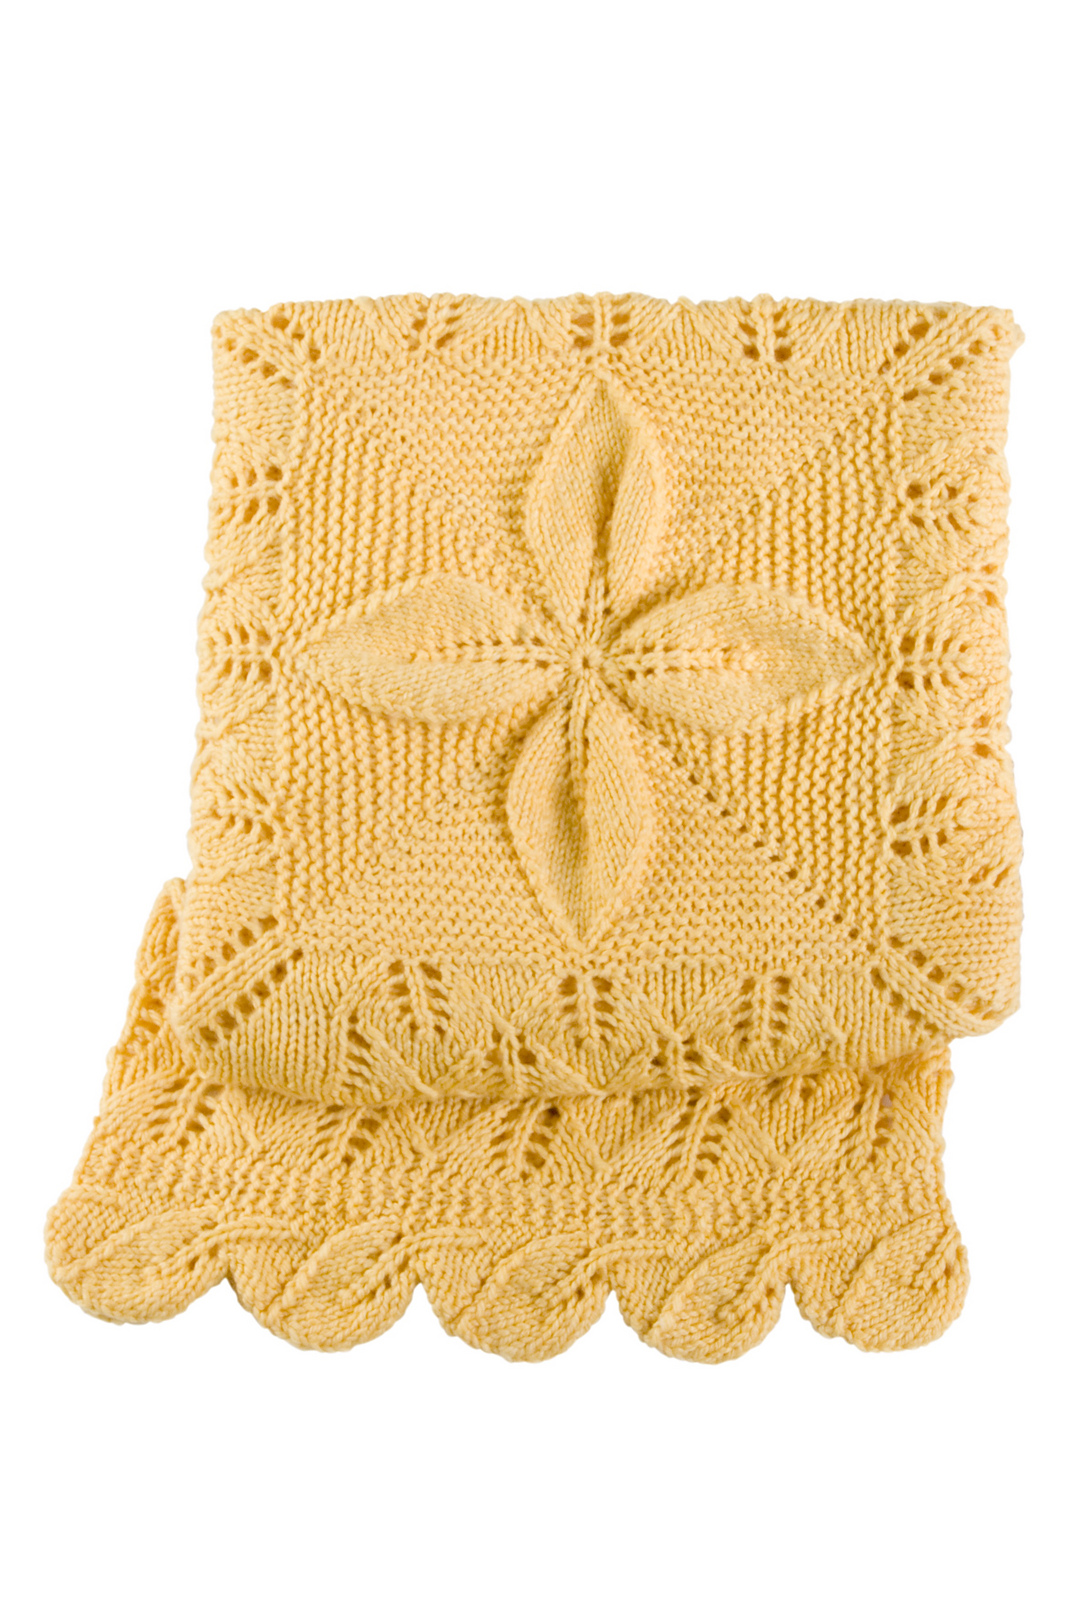 Lacy Leafy Afghan Baby Blanket Free Knitting Pattern